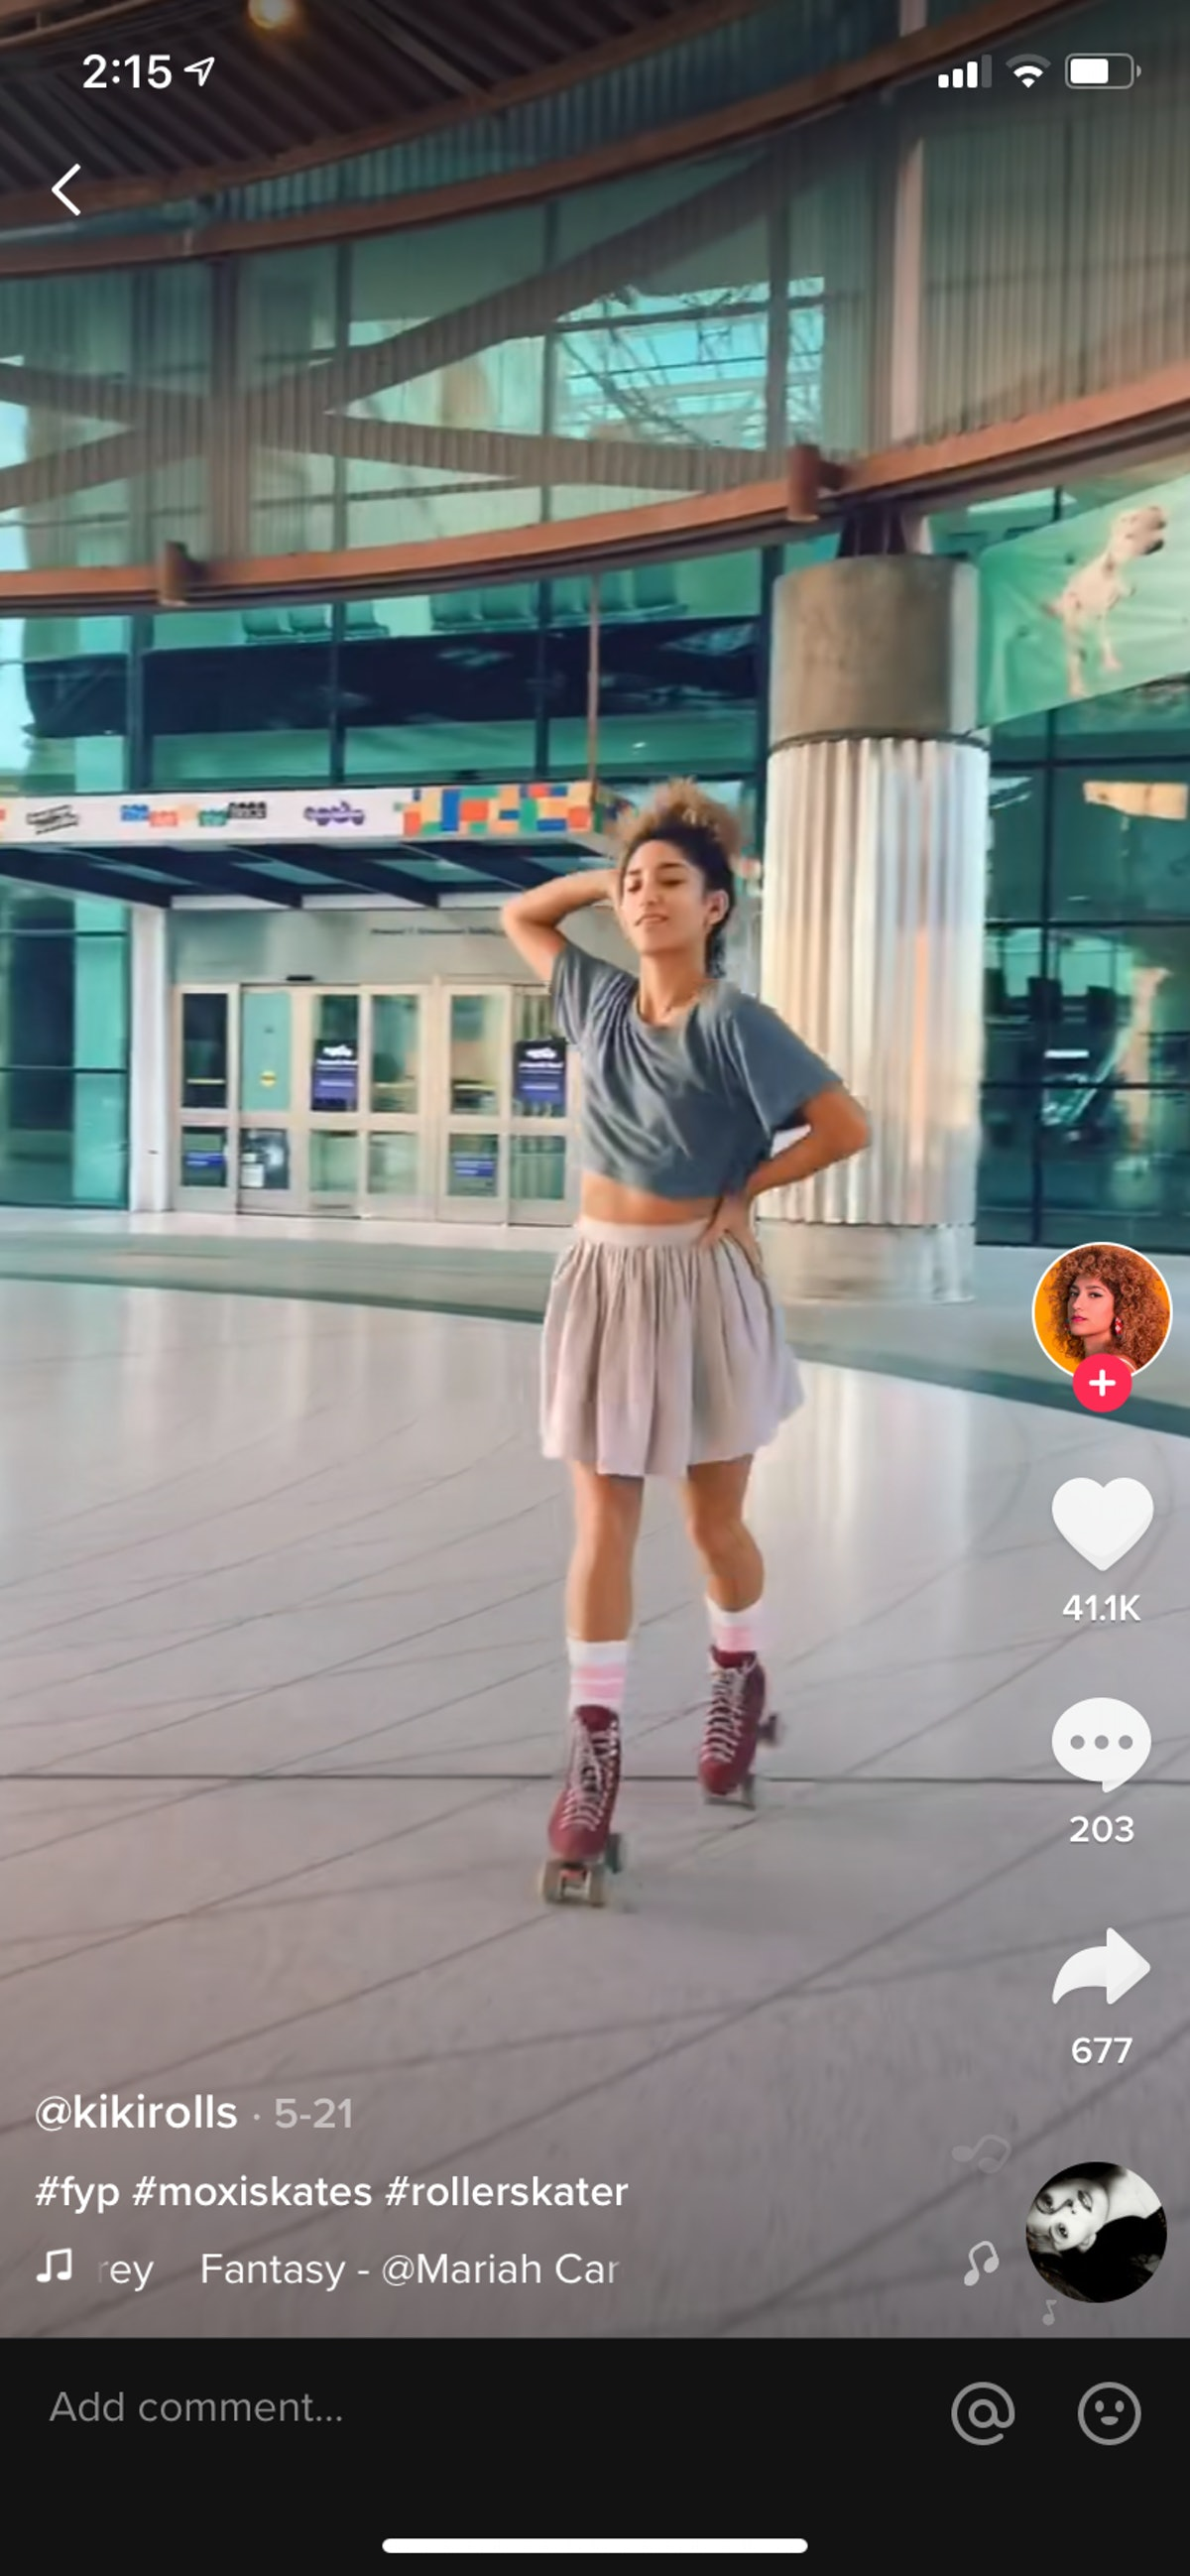 A young Black woman roller skates near a movie theater and poses for a TikTok video.